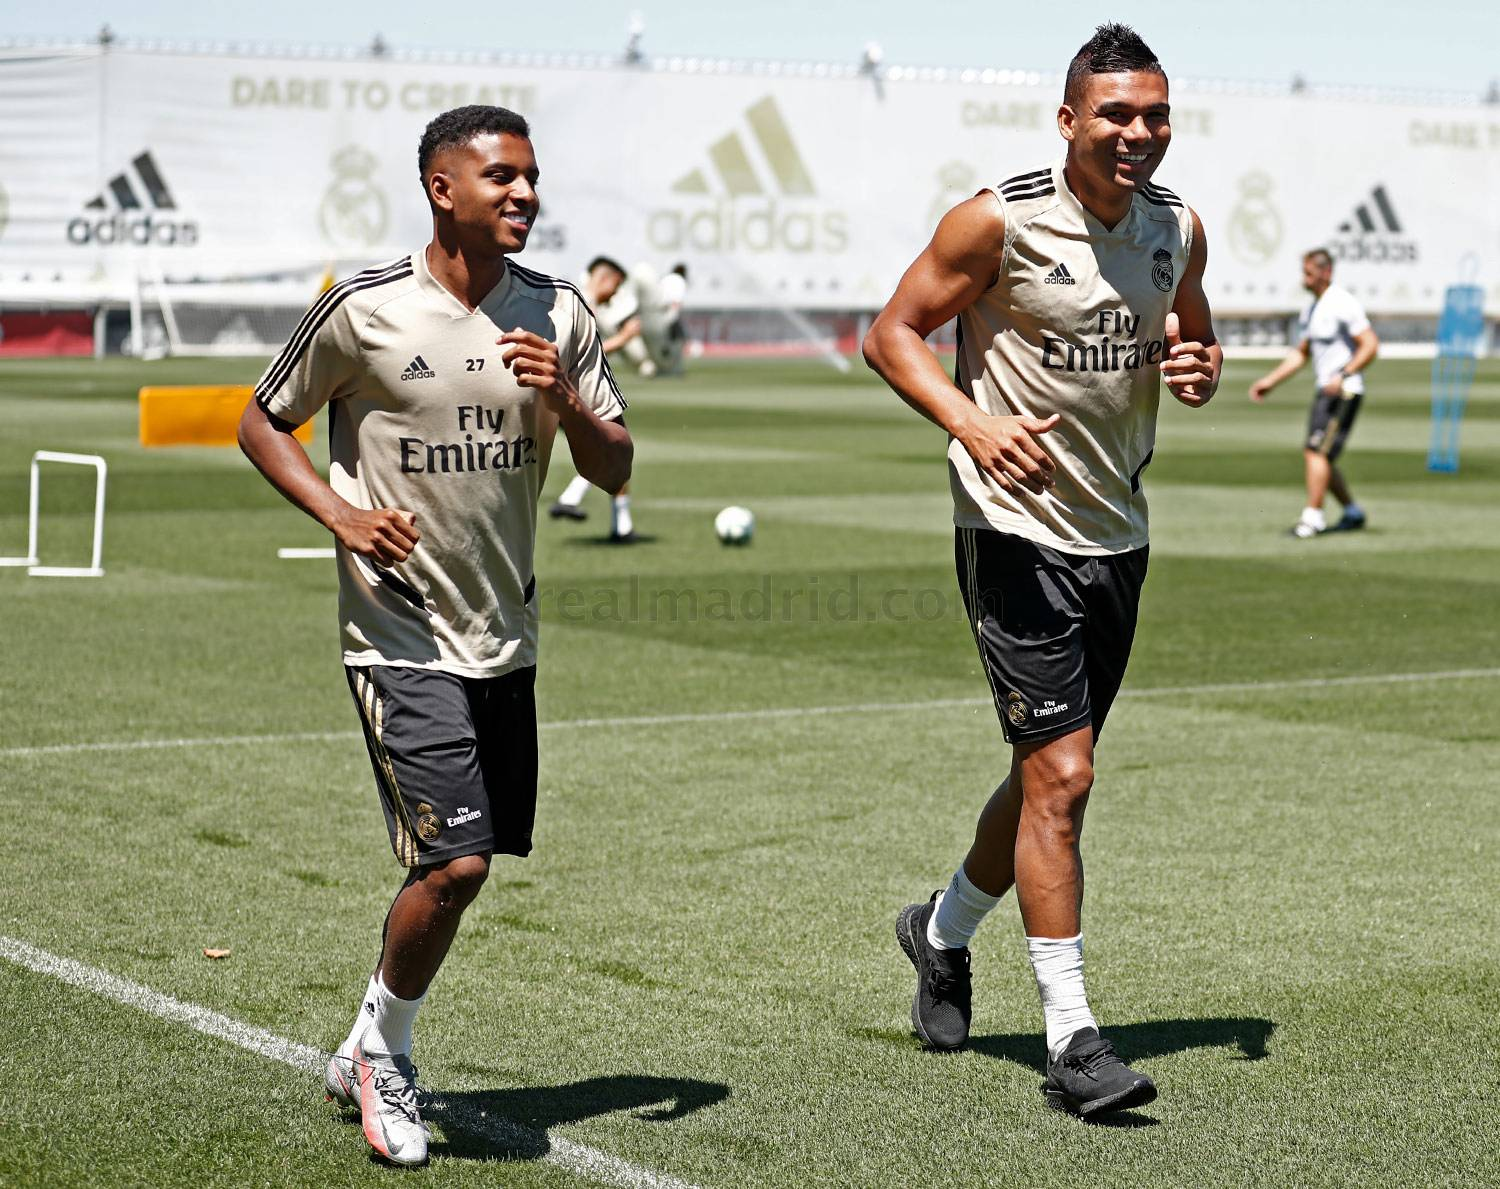 Real Madrid - Entrenamiento del Real Madrid  - 17-07-2020